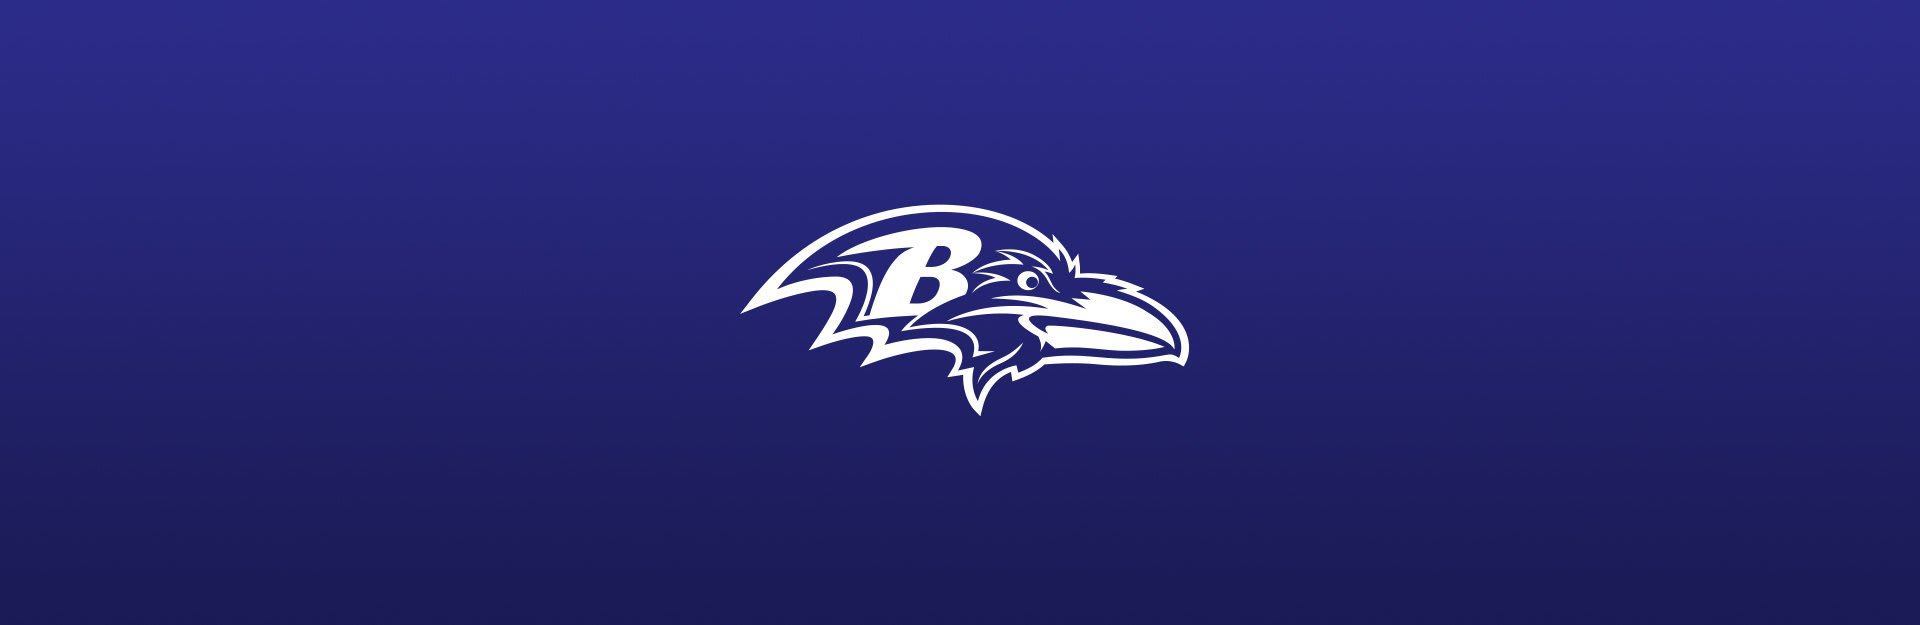 Baltimore Ravens logo on blue background